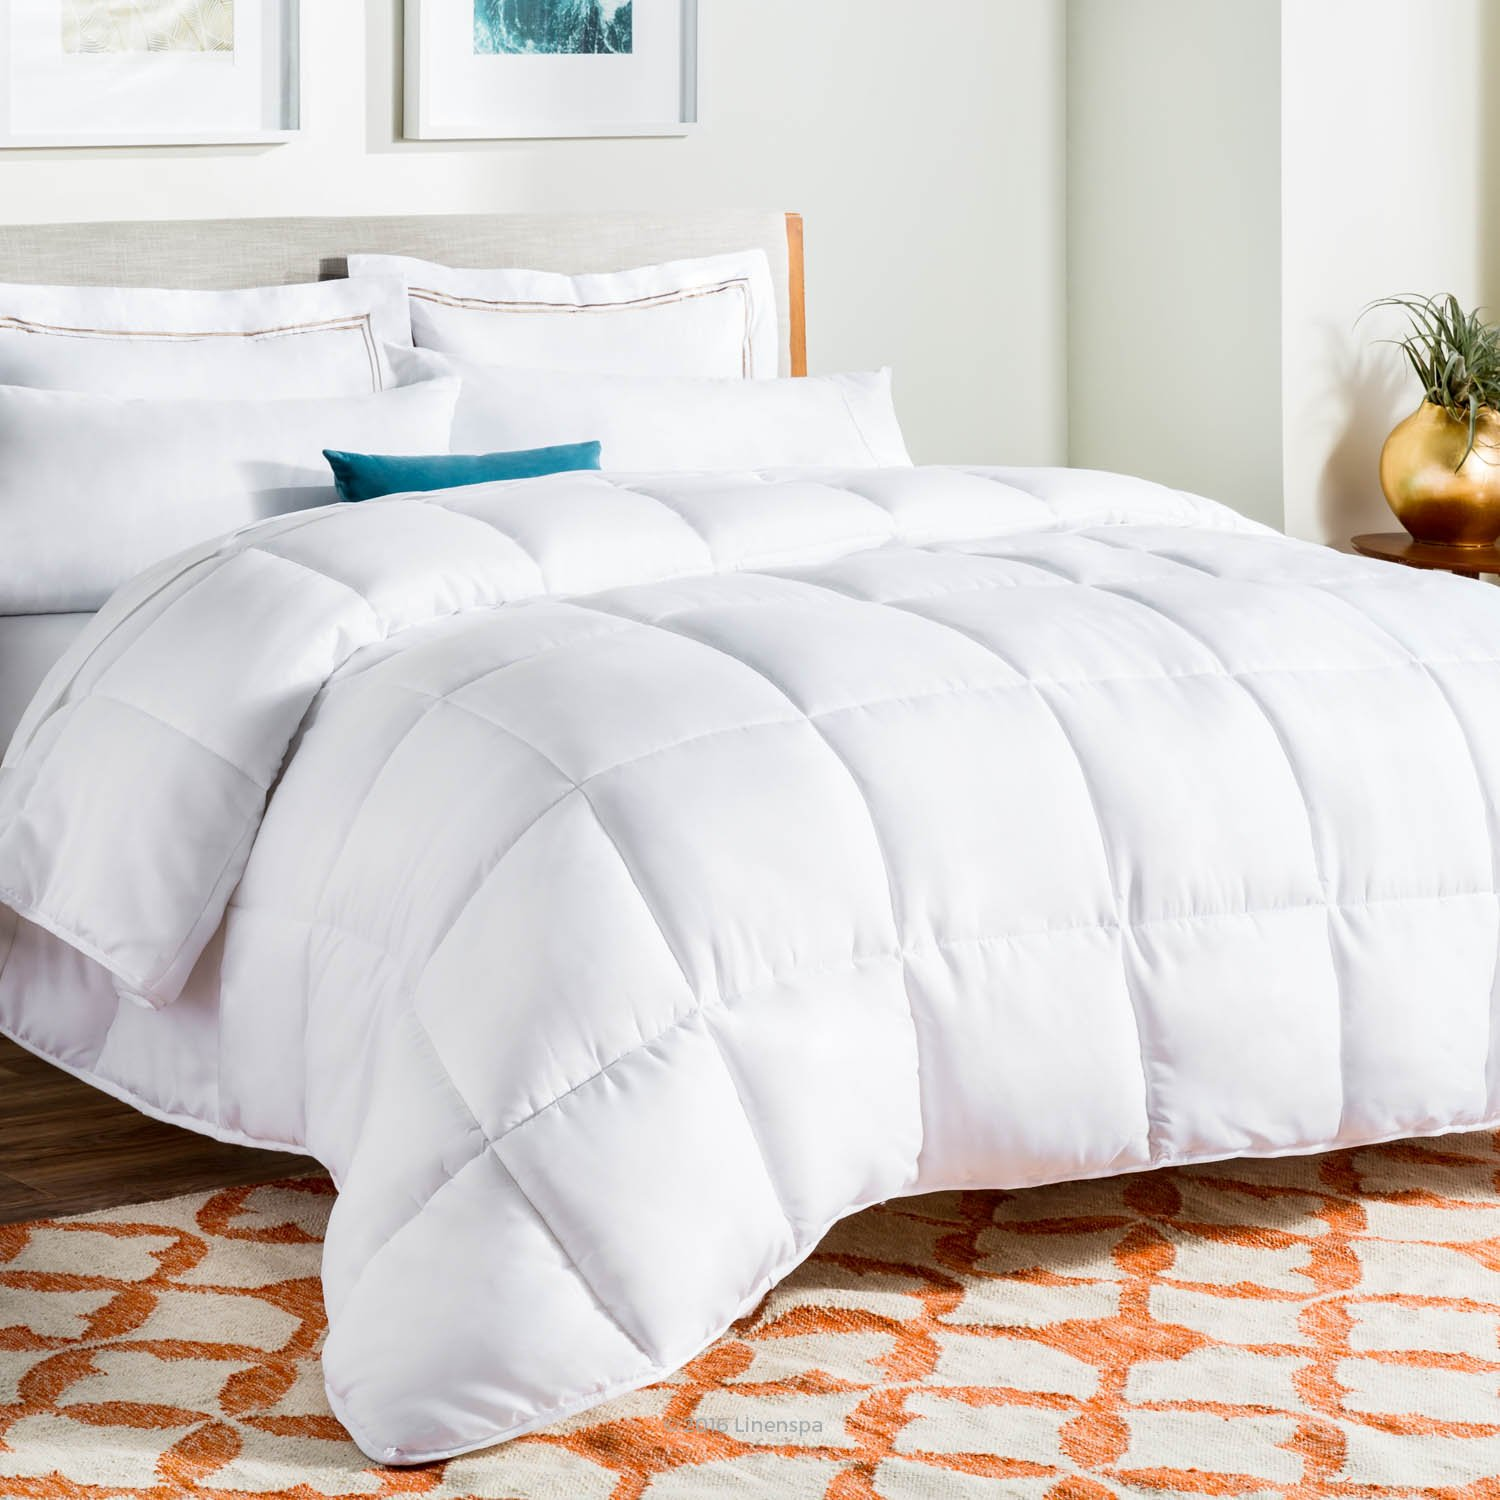 weight shot down robshaw summer comforter product john zoom textiles